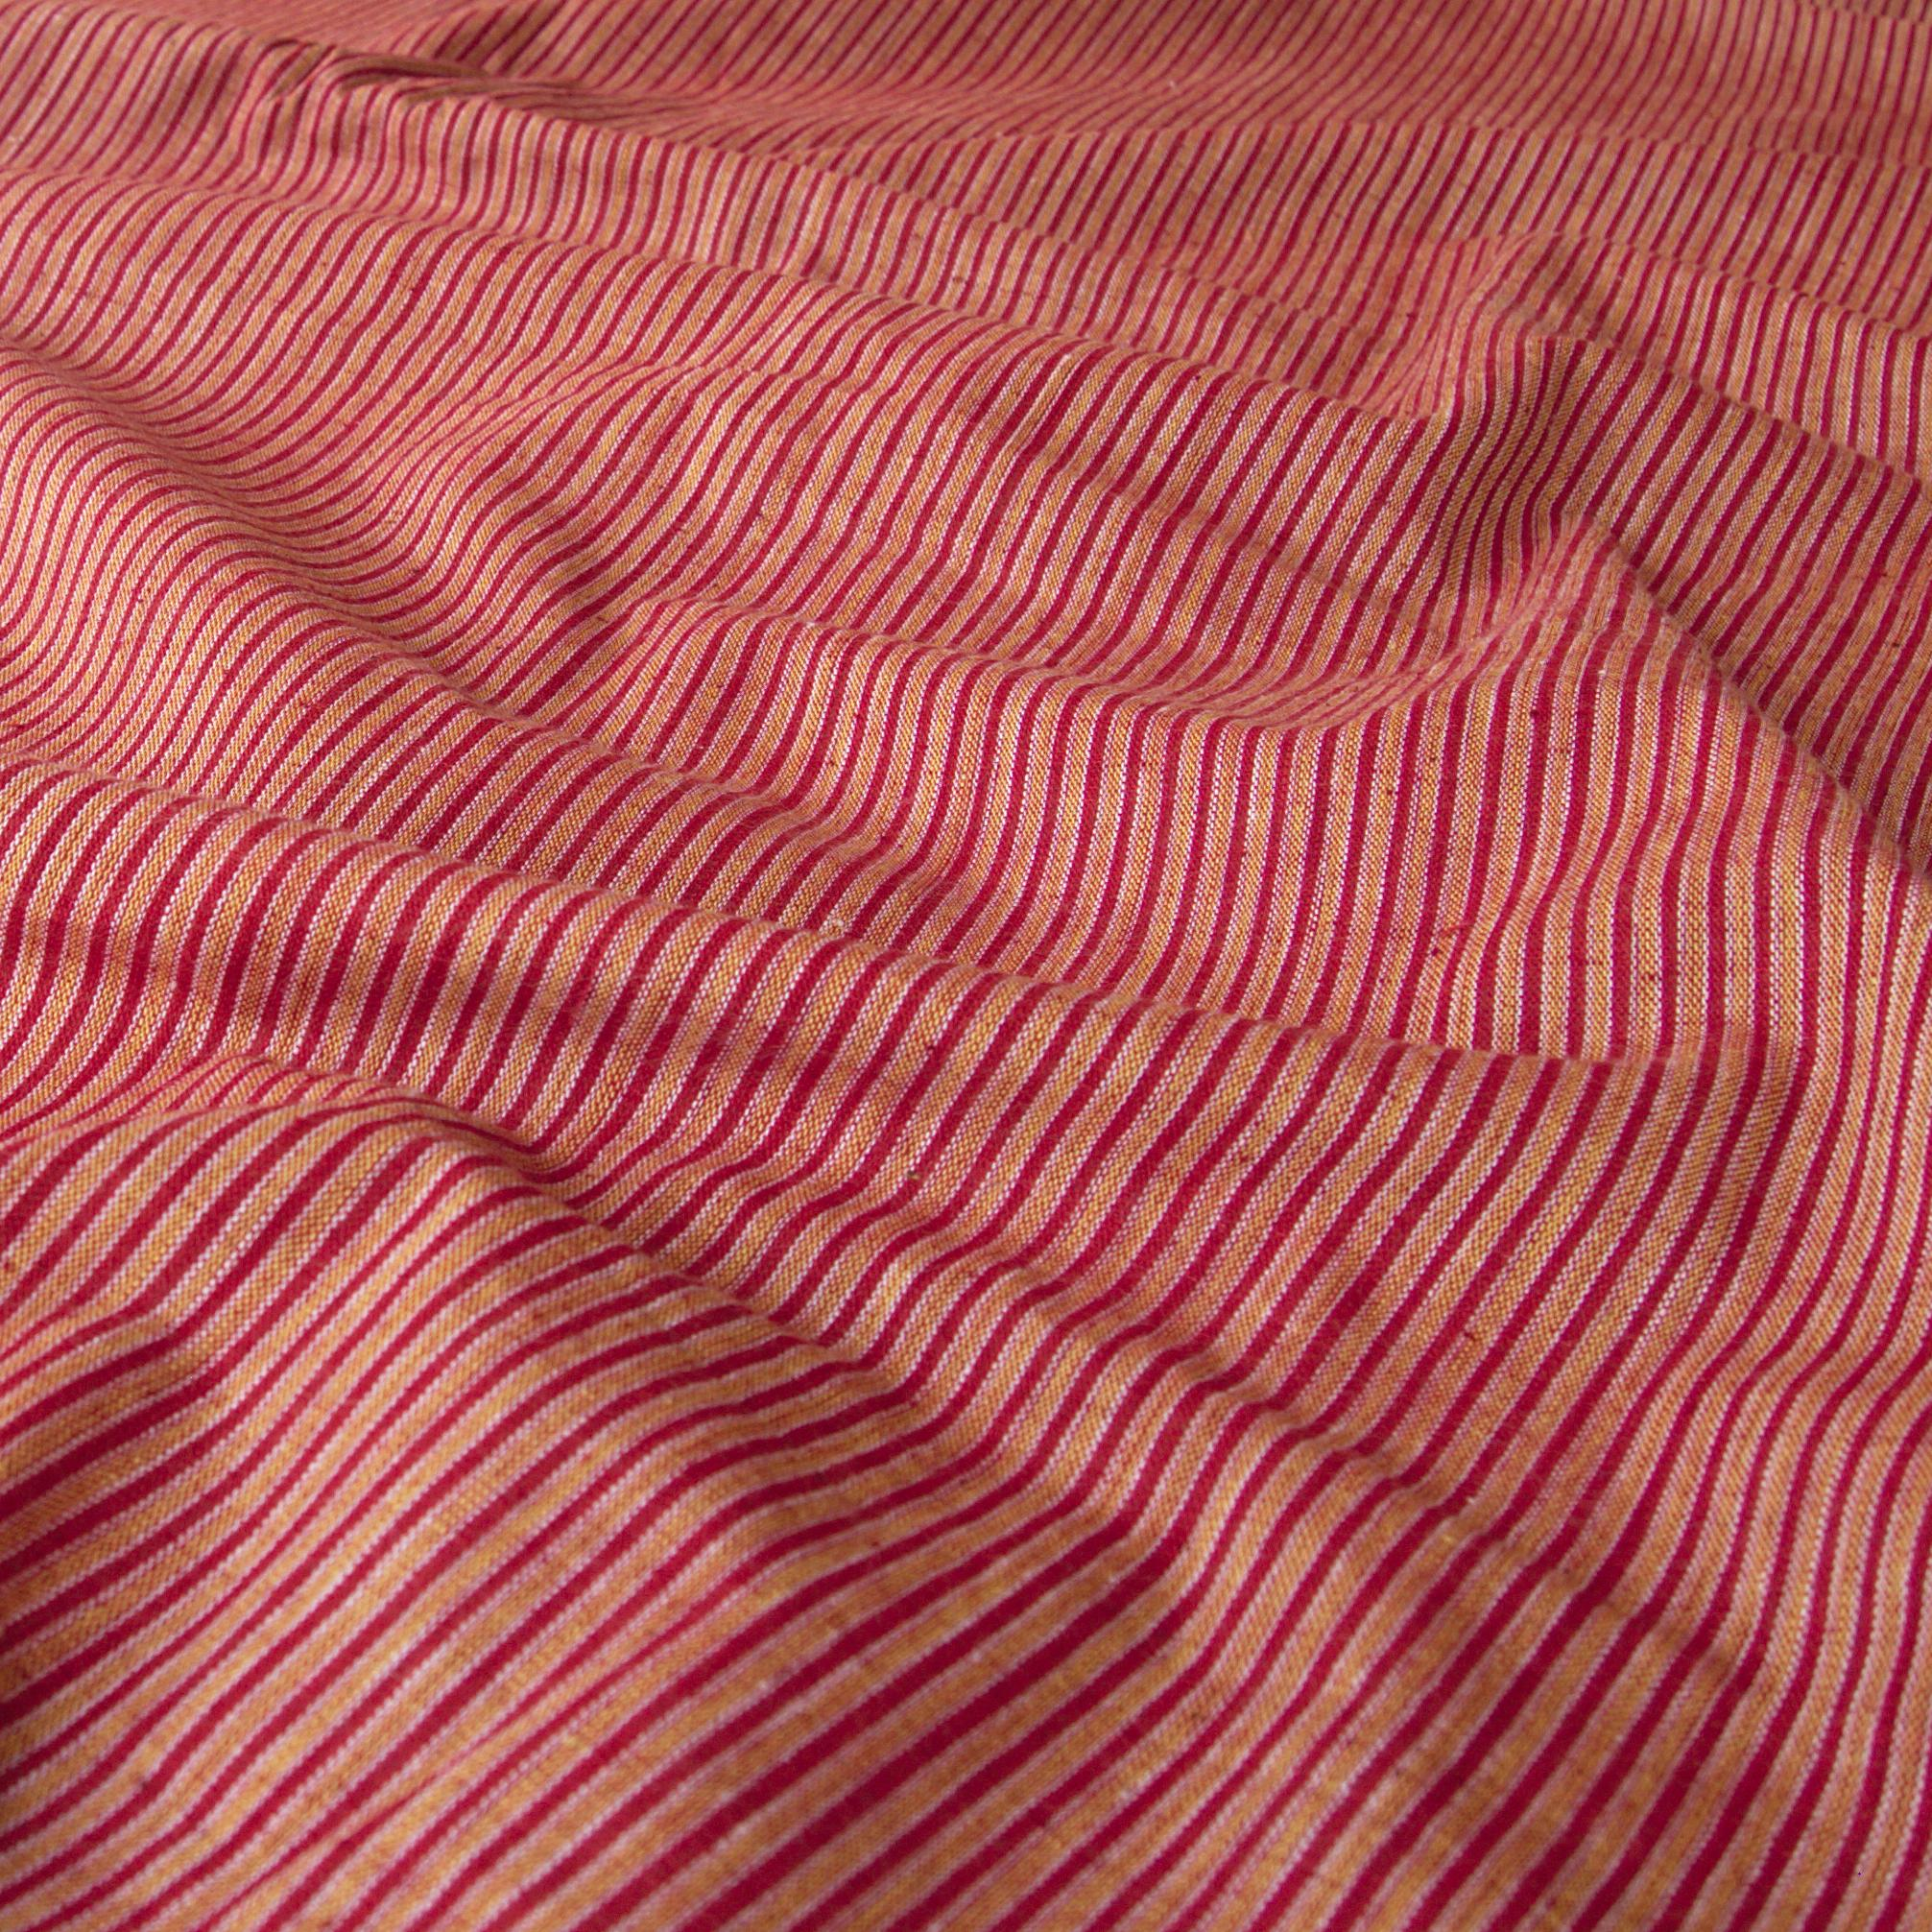 100% Handloom Woven Cotton - Double Stripes - Alizarin Red Warp & Weft, White and Pomegranate Yellow Warp - Contrast